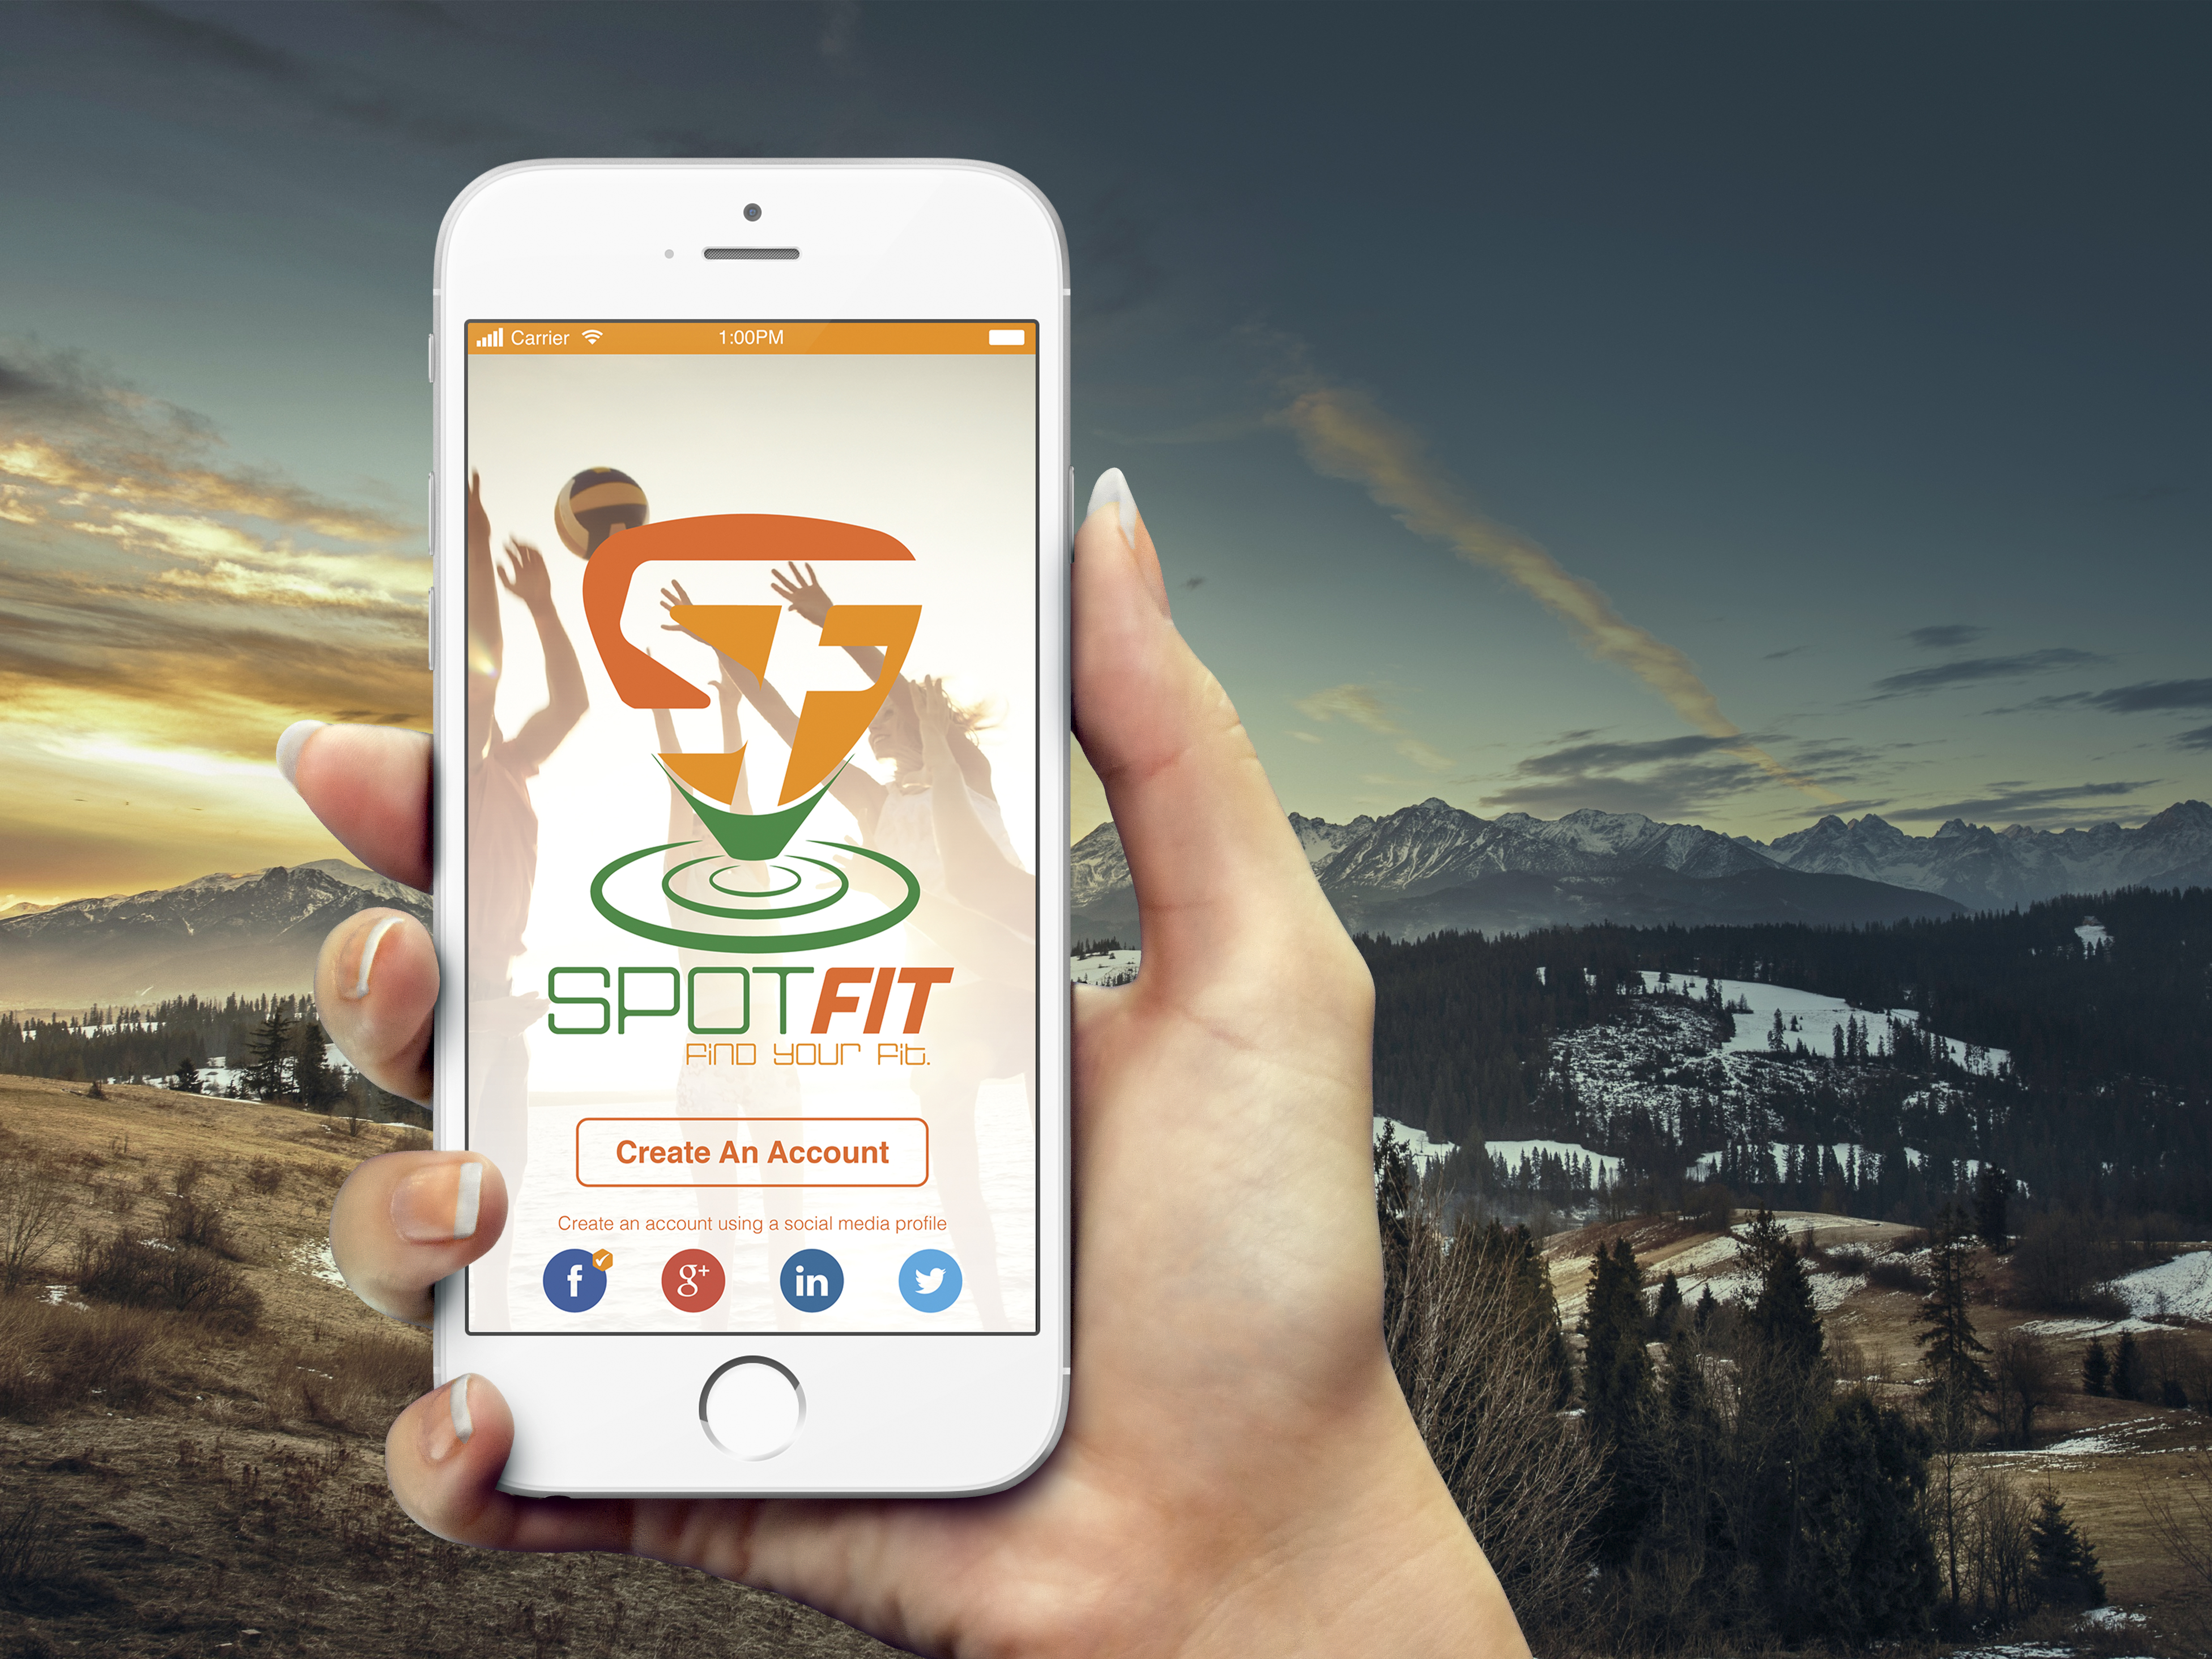 Spot Fit home screen